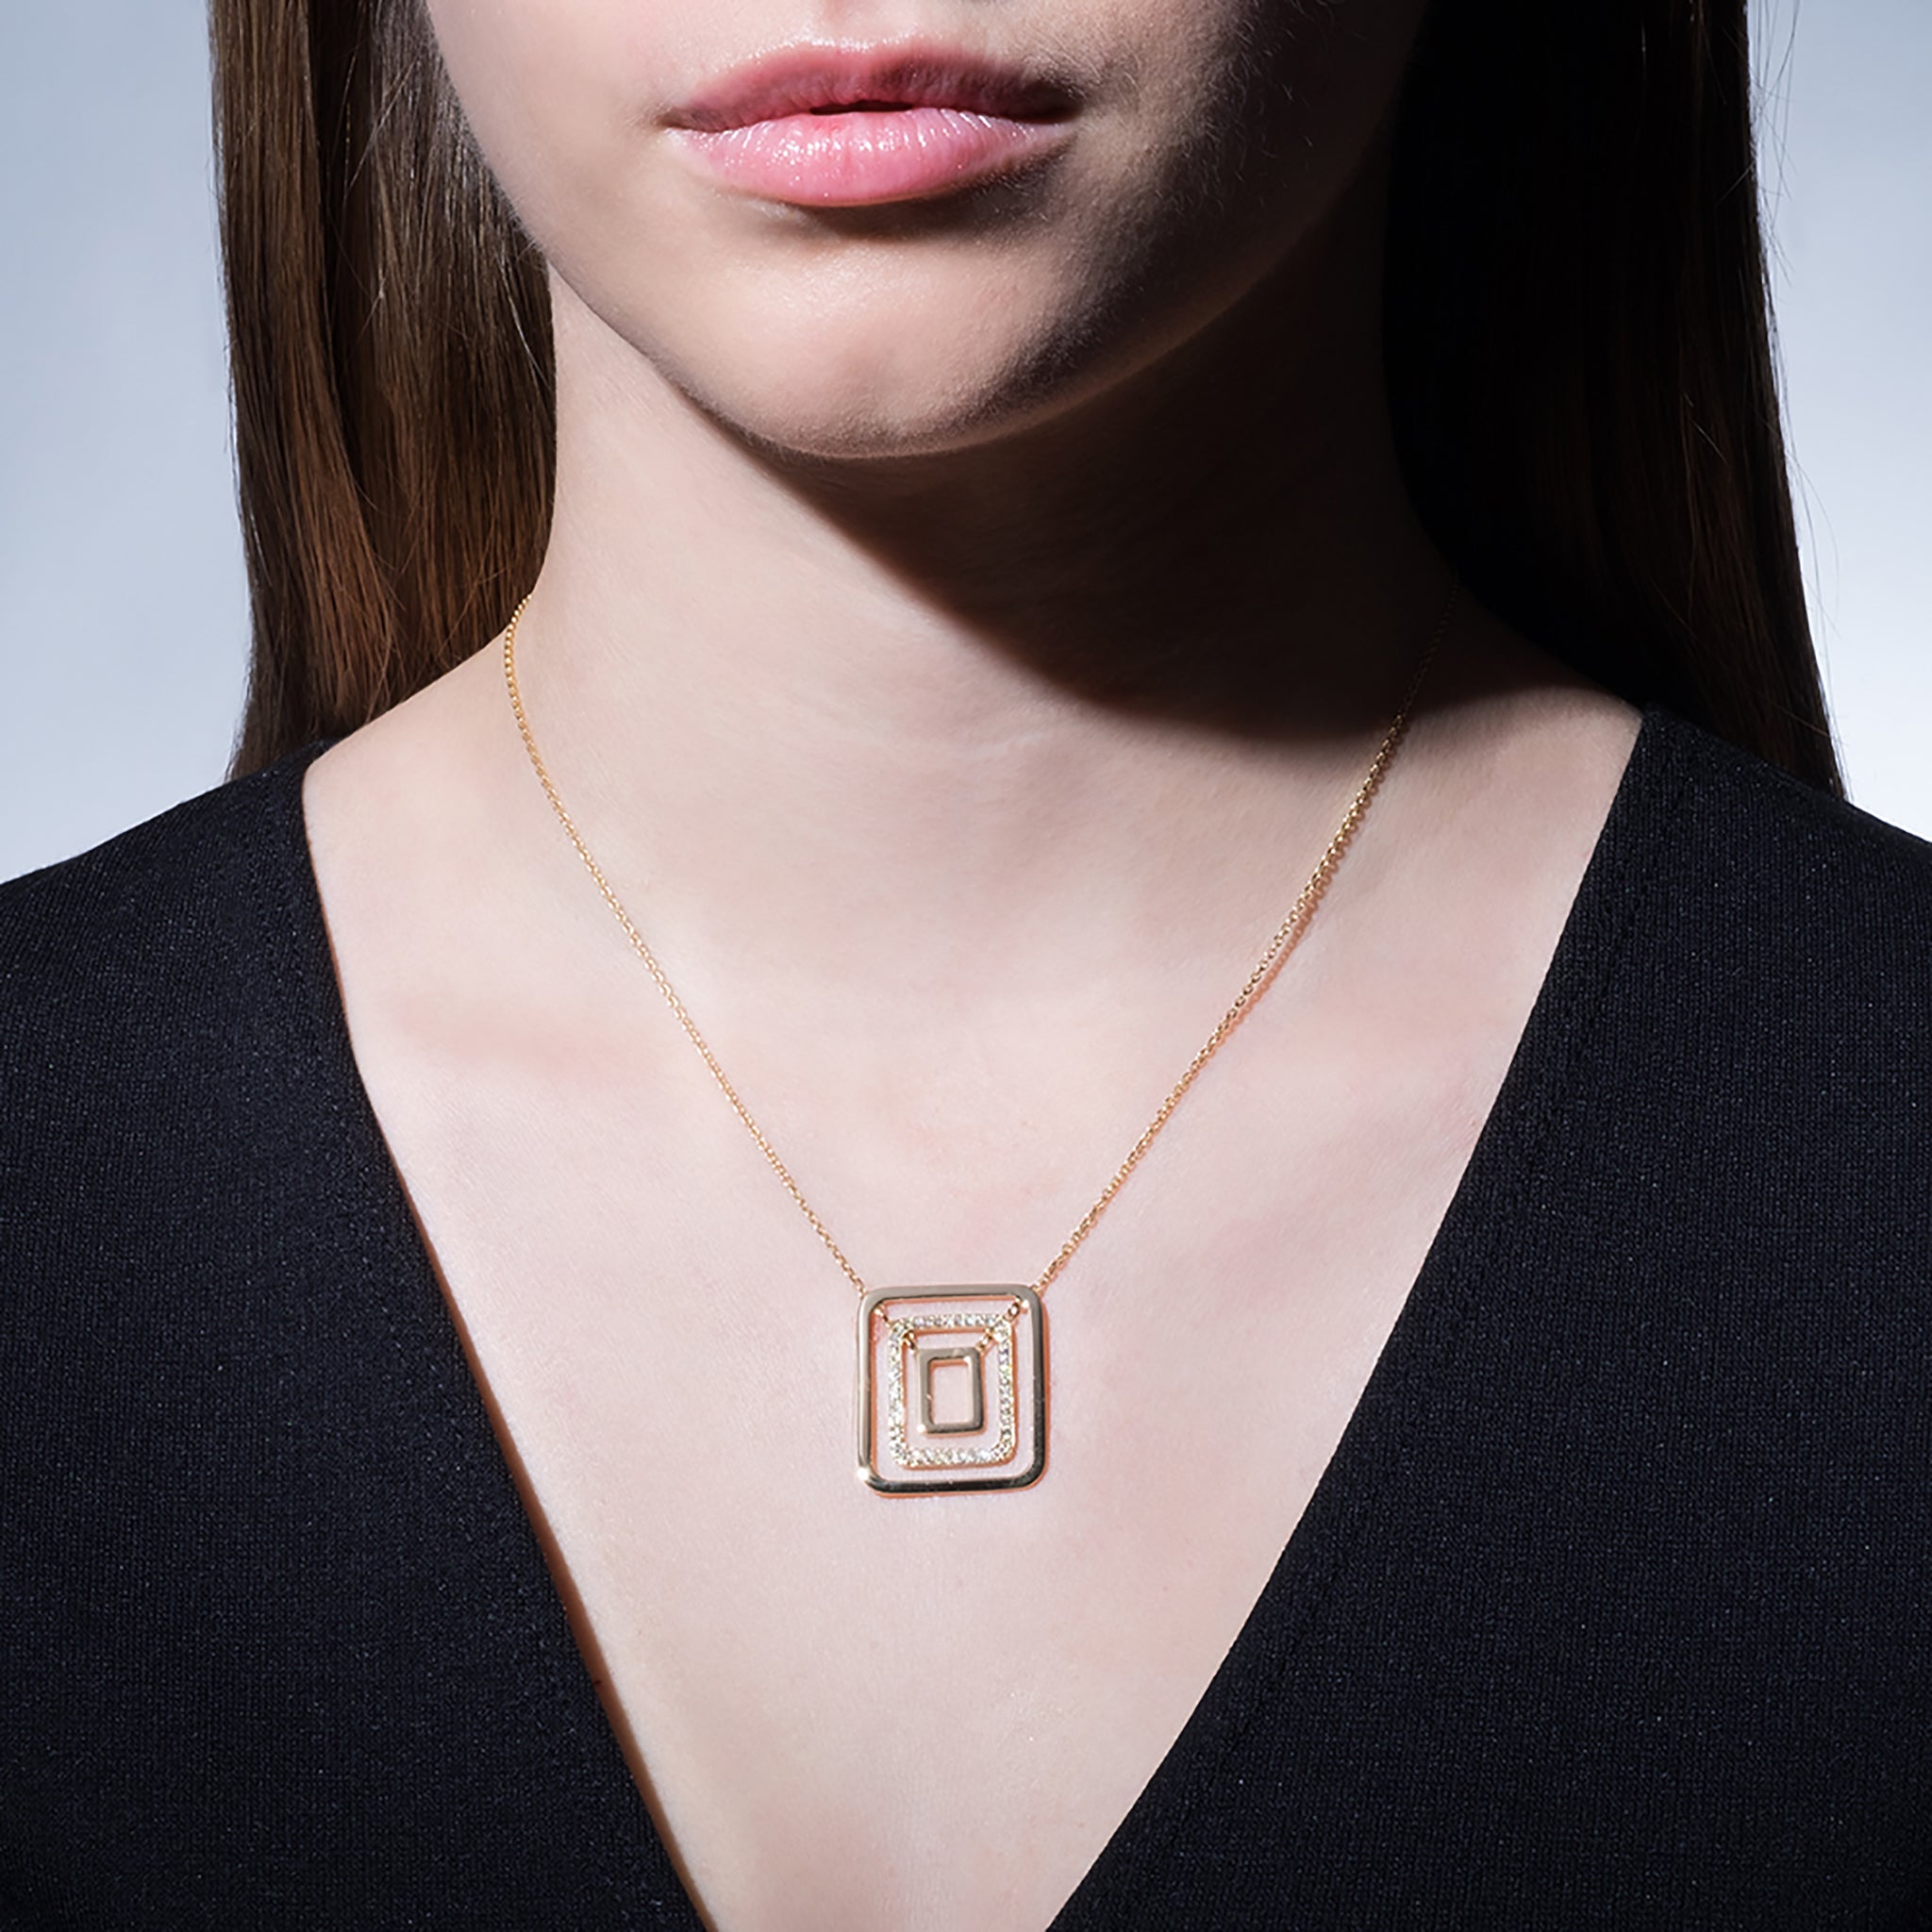 Mimi-So-Piece-Square-Swing-Necklace